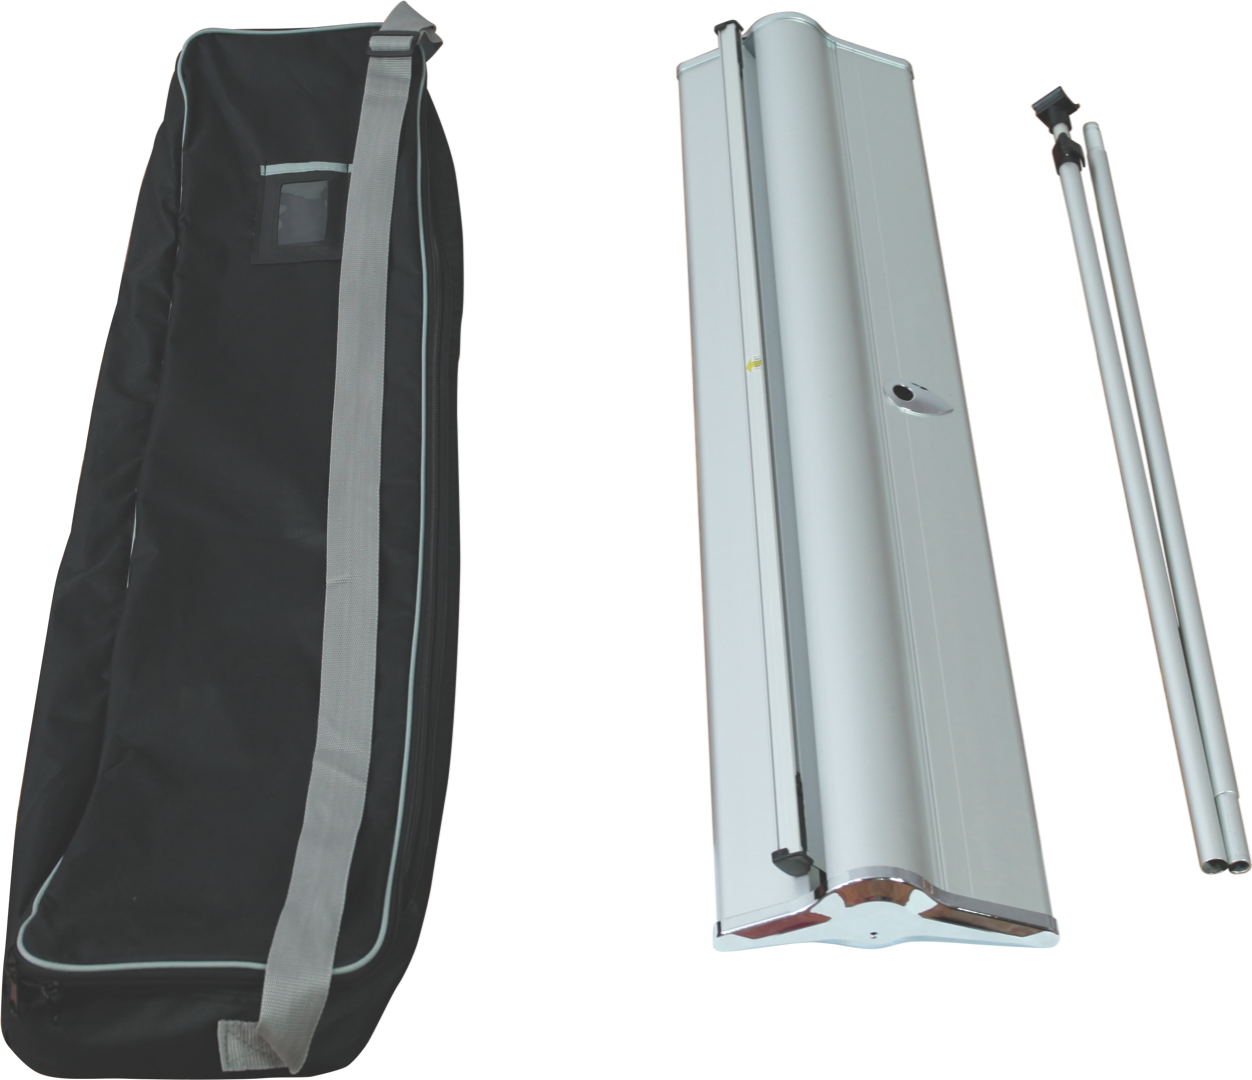 blade-lite-retractable-banner-stand-parts.png